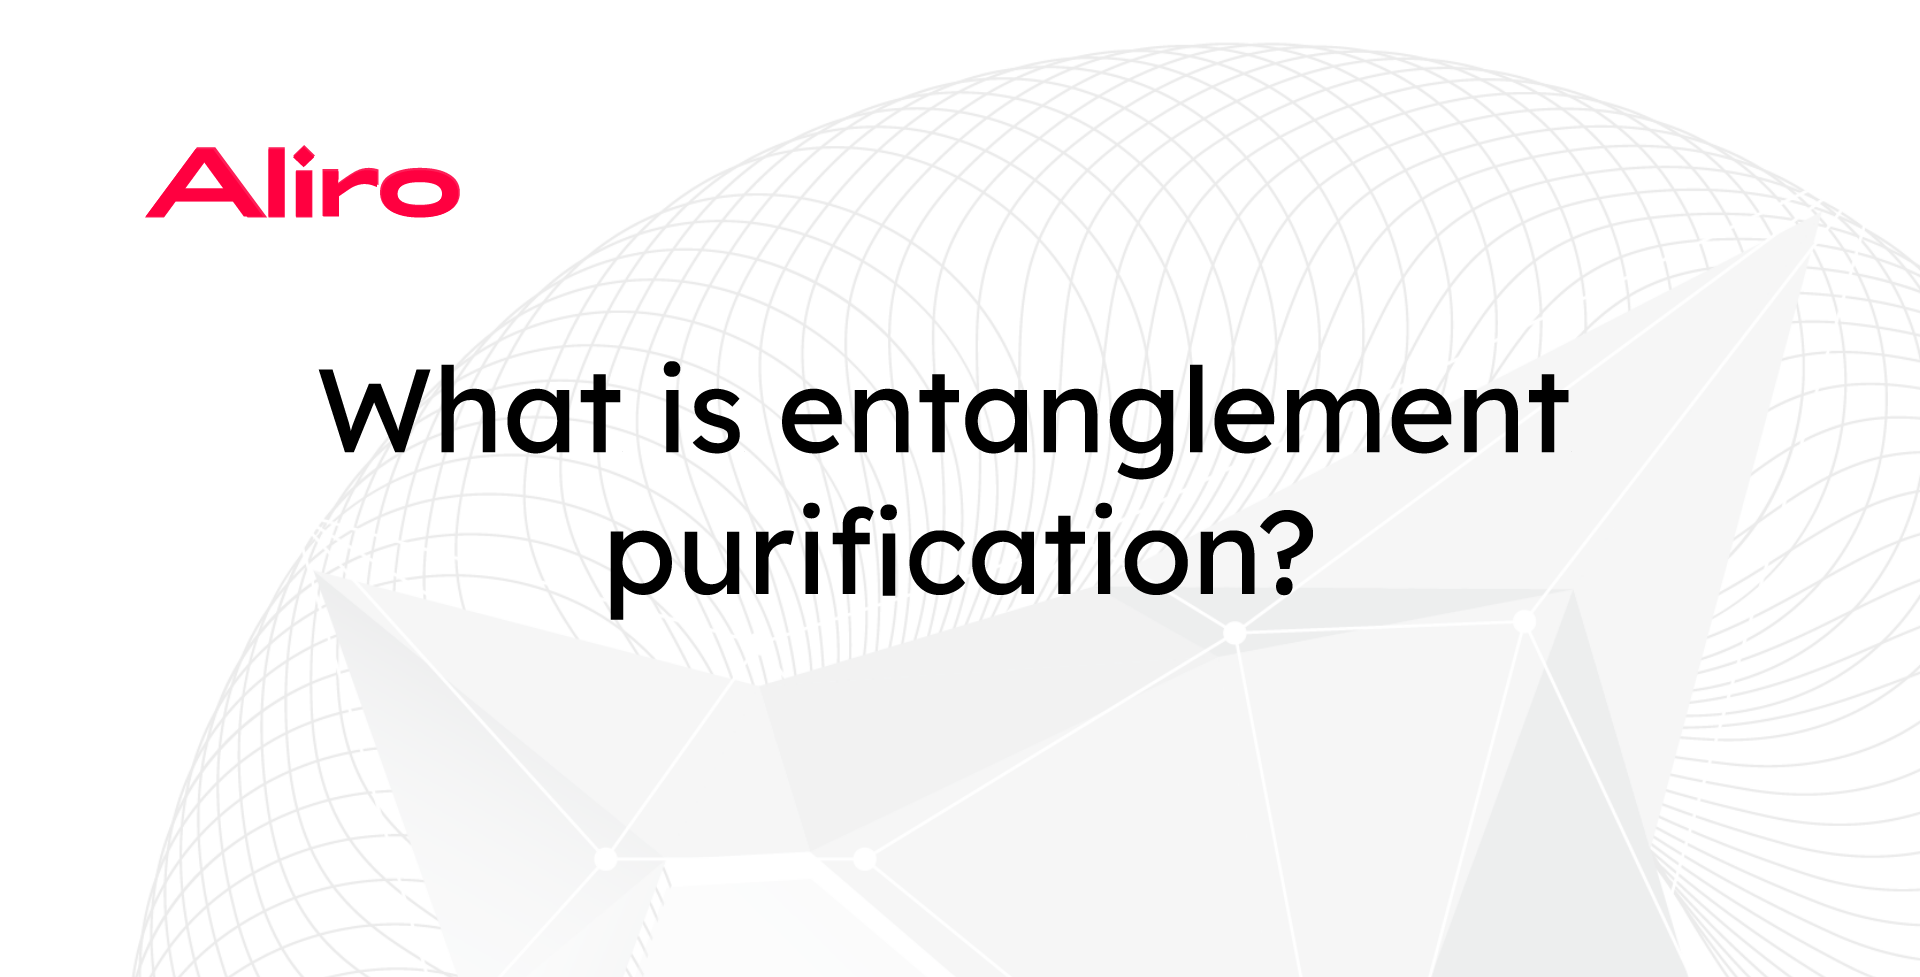 What is entanglement purification?